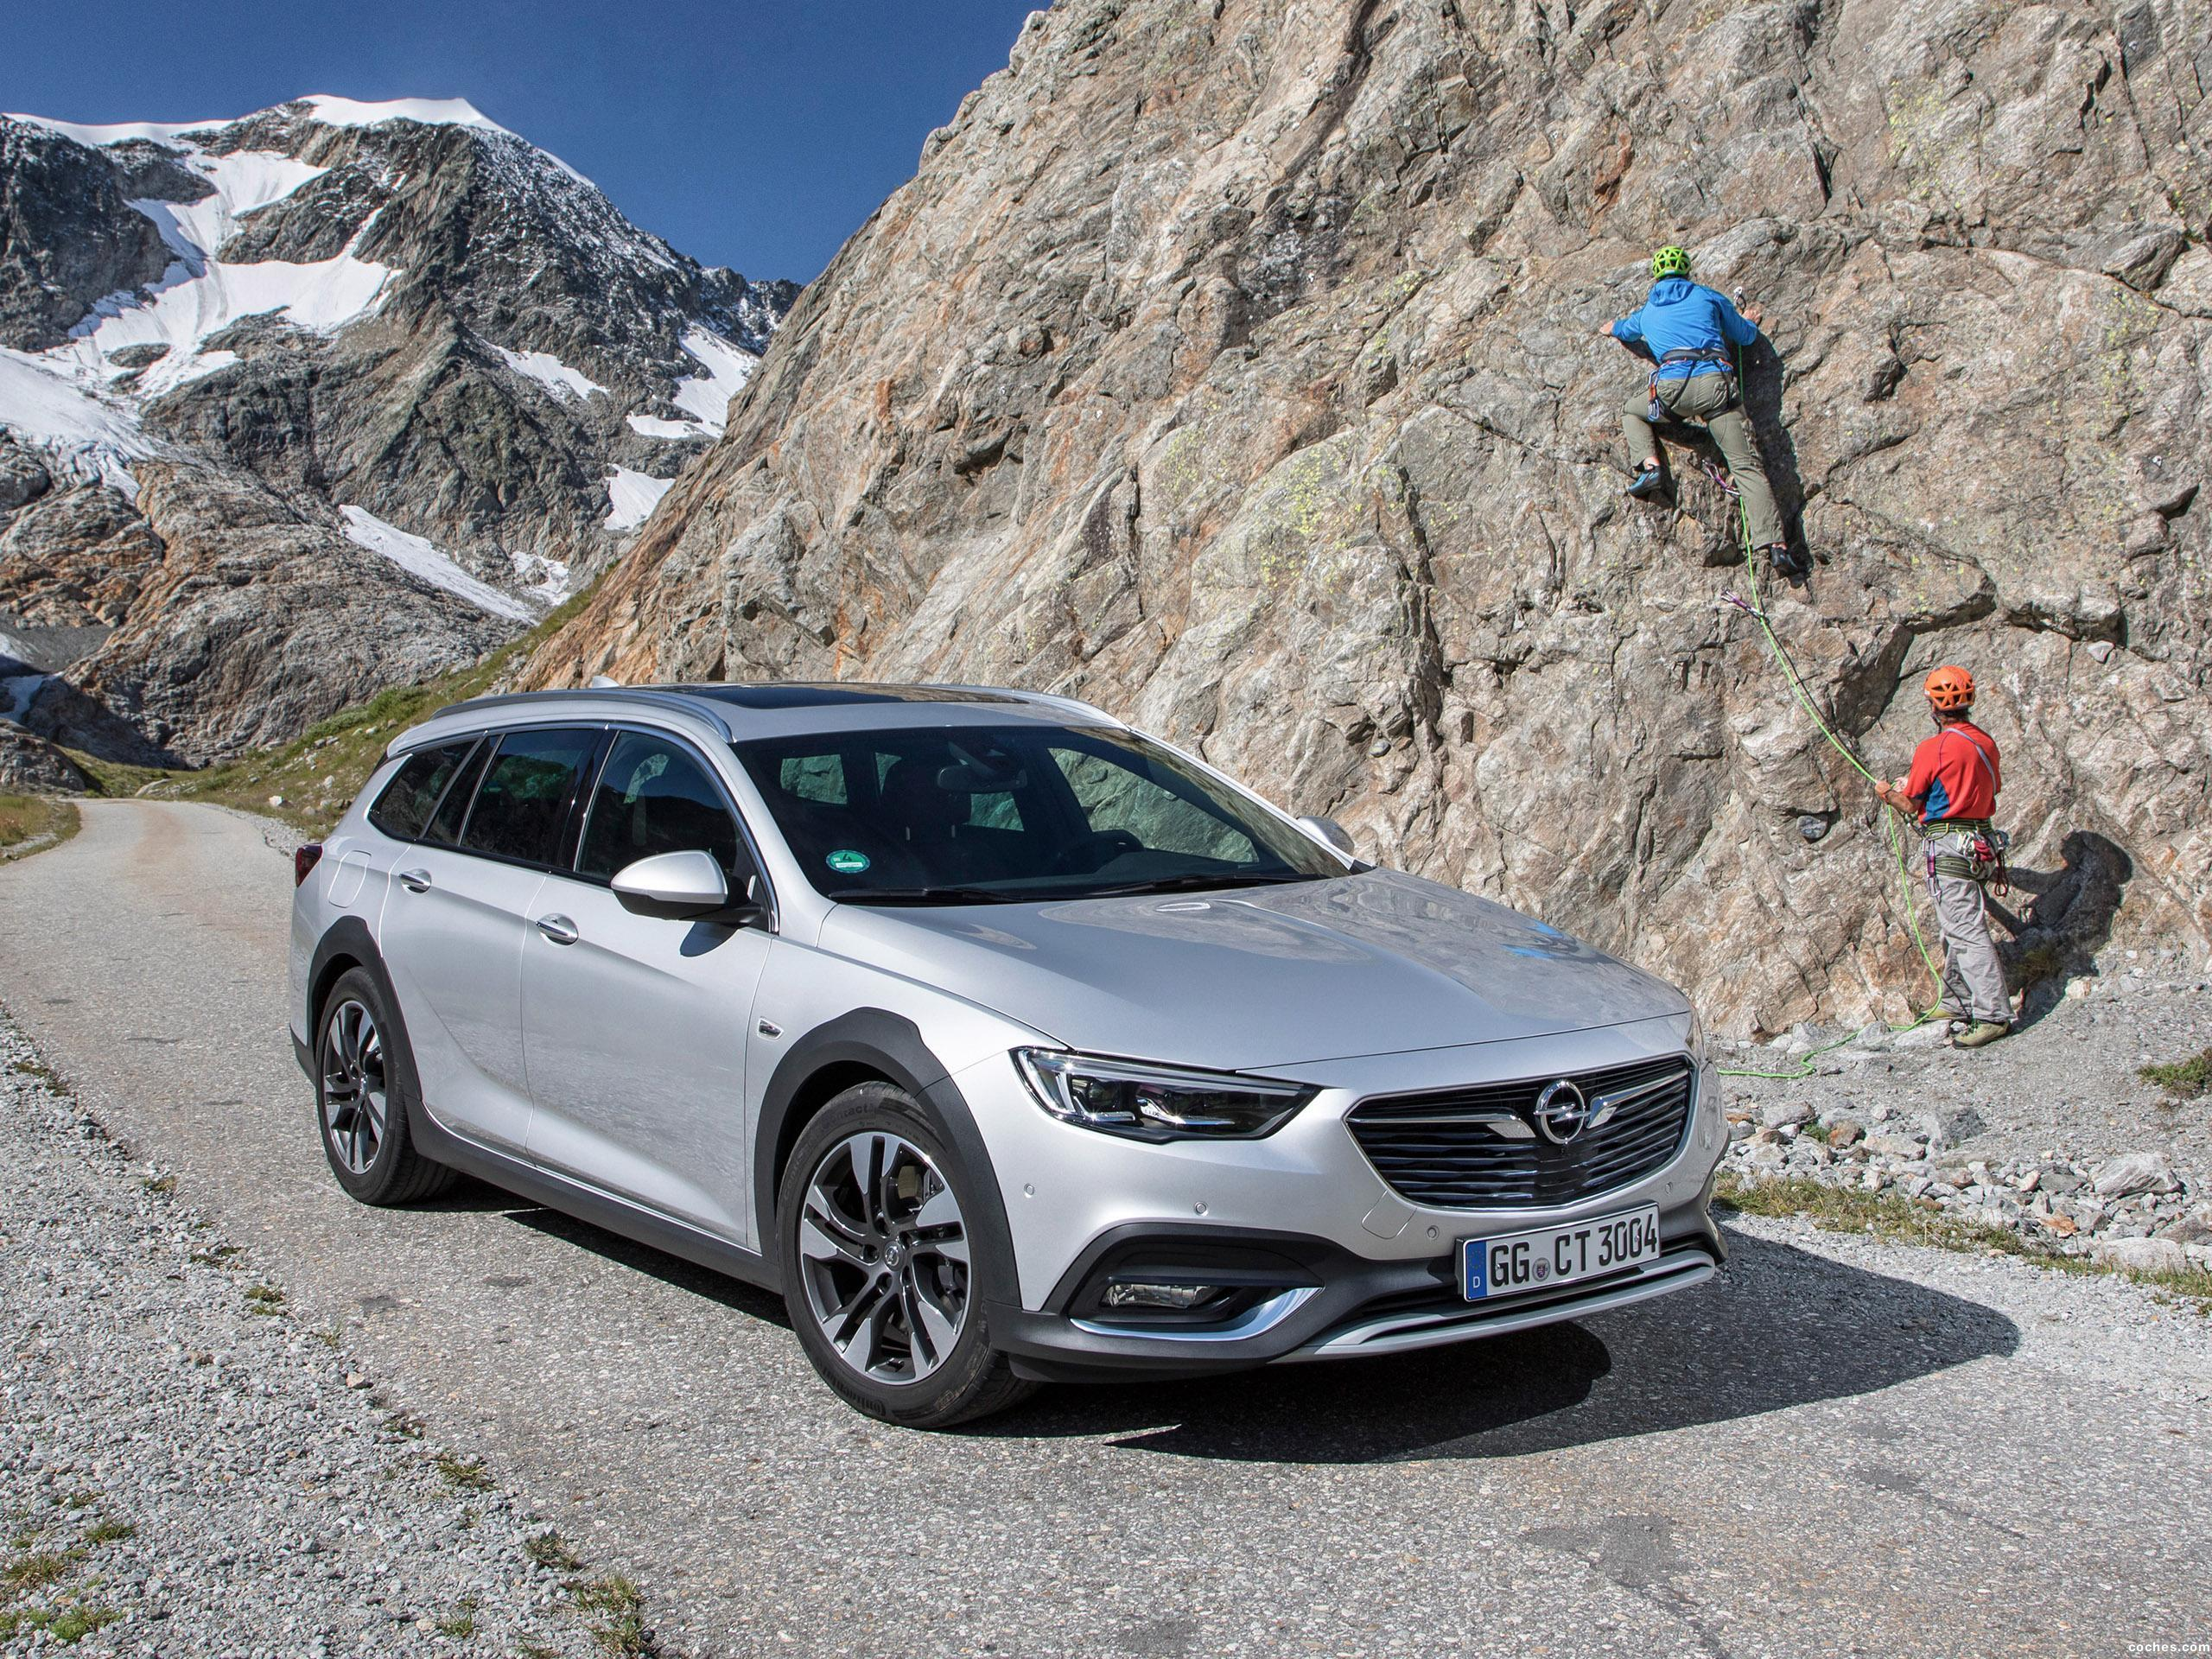 opel_insignia-country-tourer-turbo-4×4-2017_r37.jpg